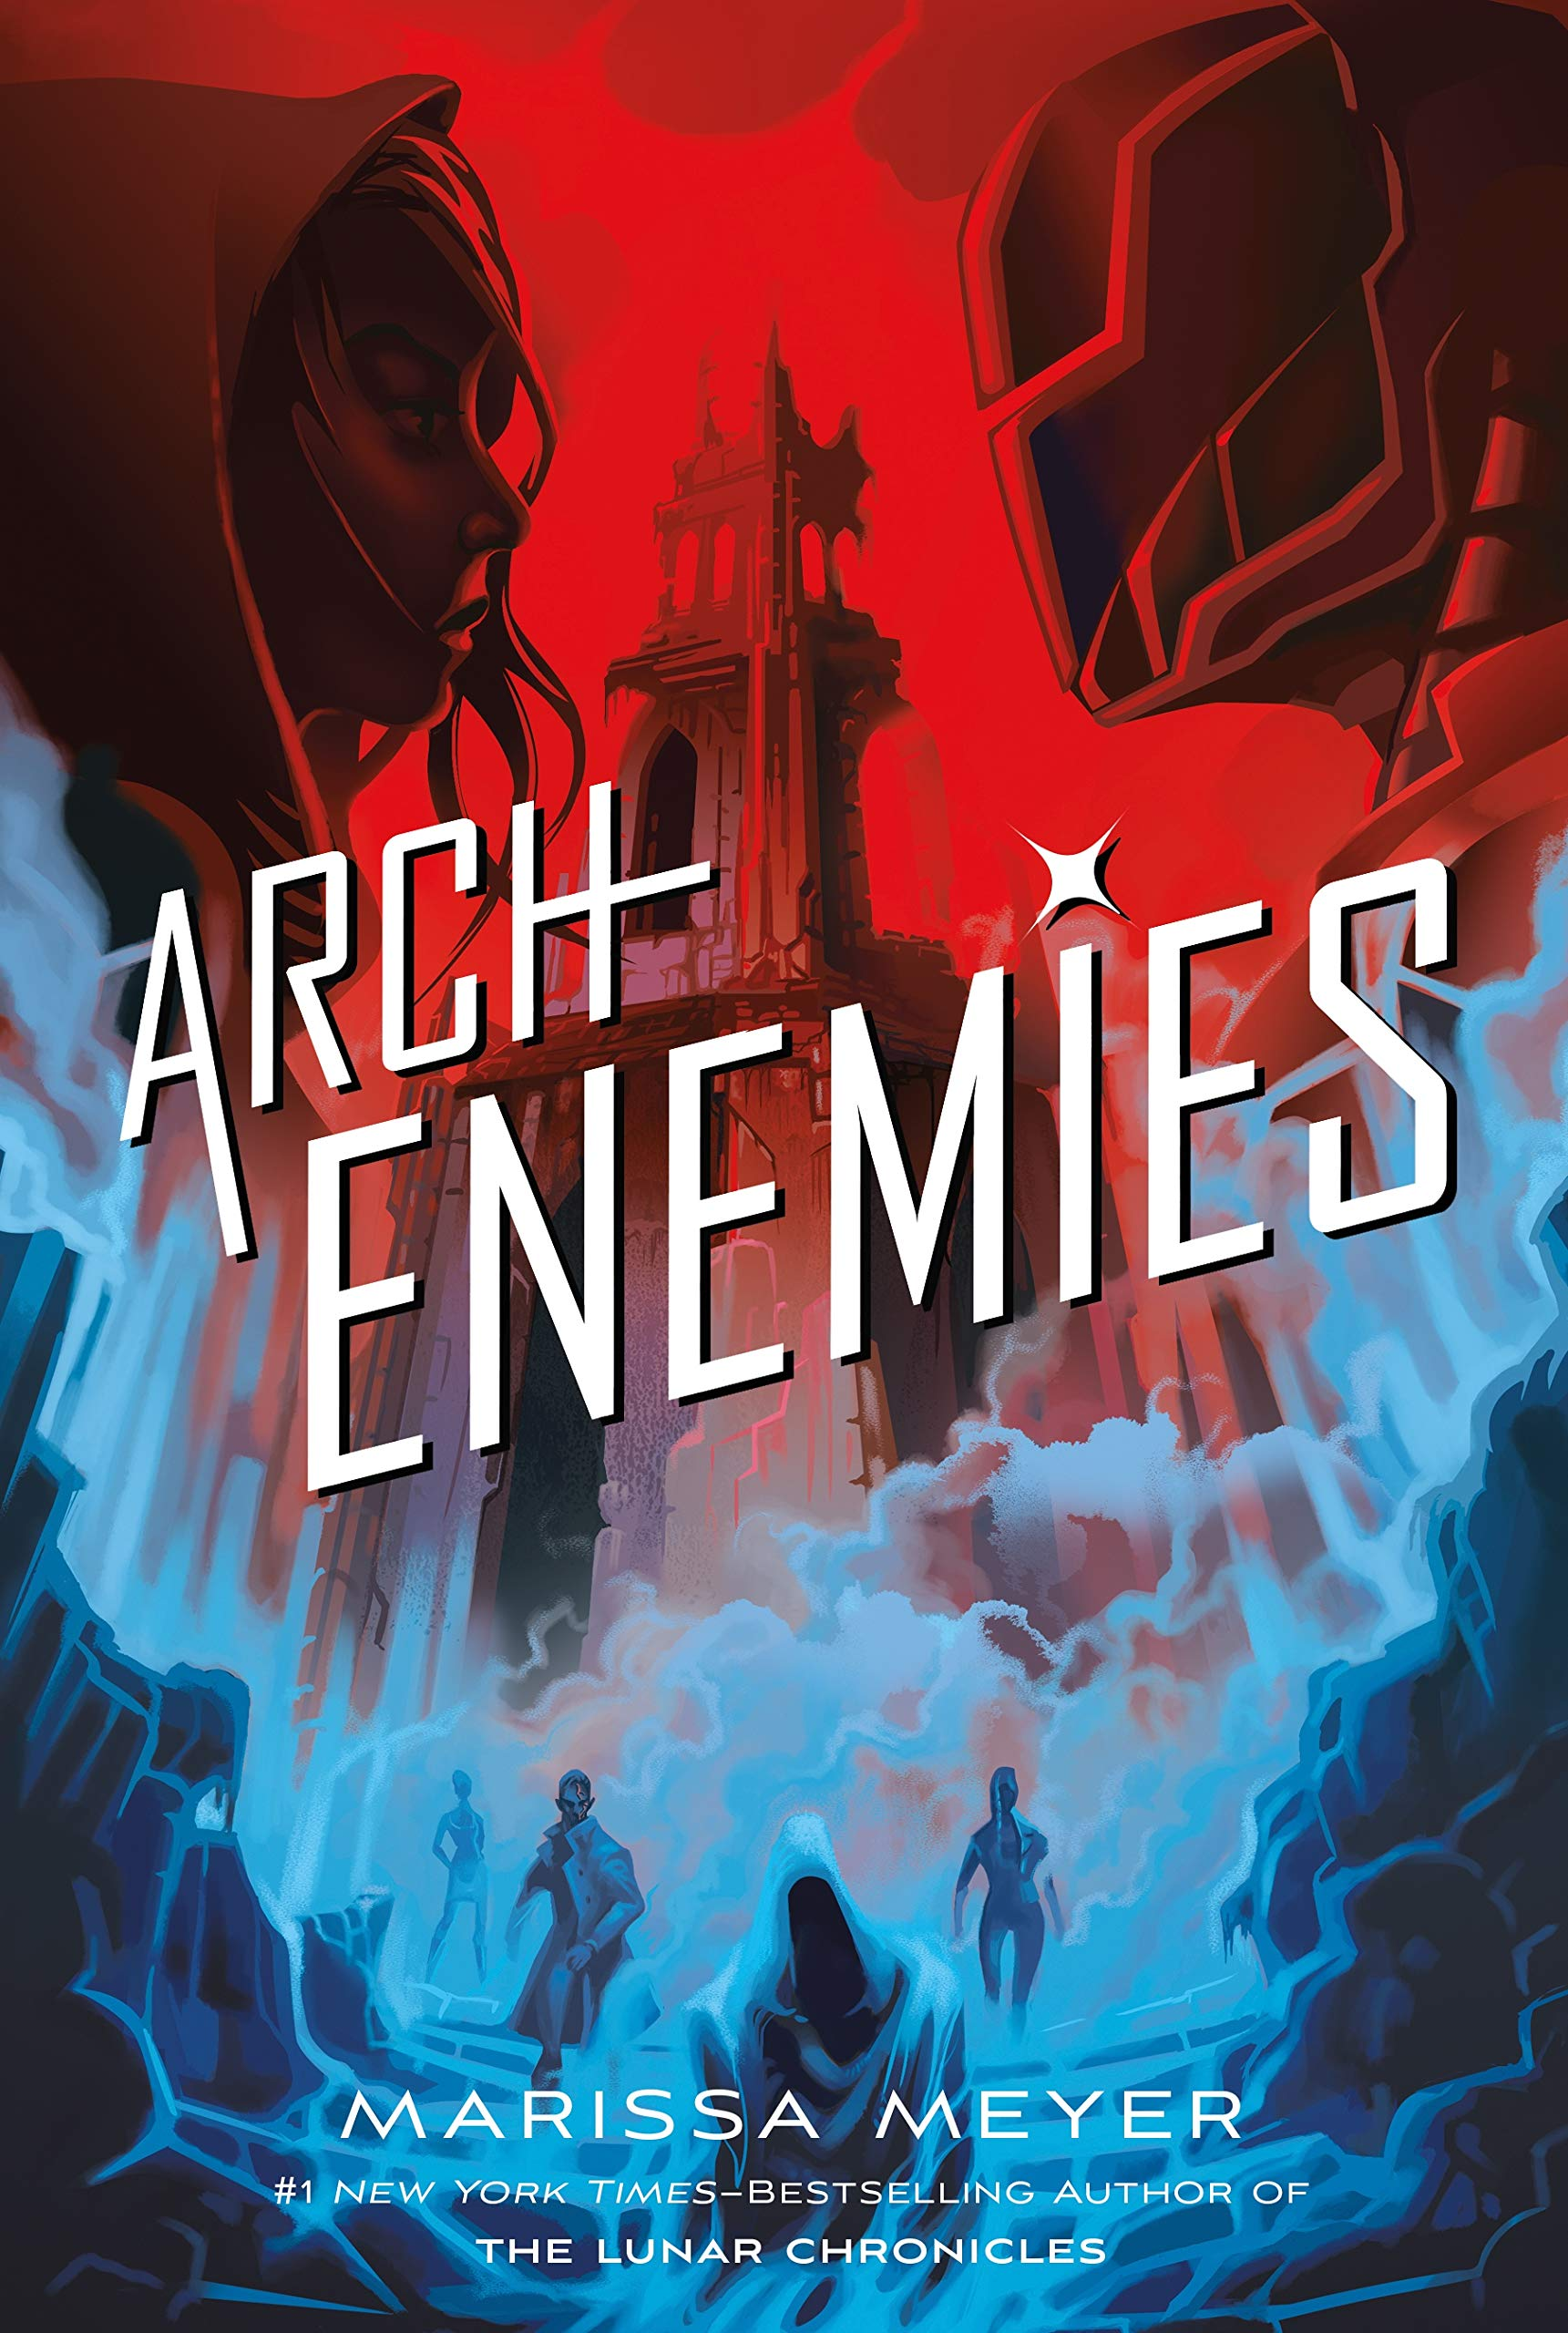 Amazon.com: Archenemies (Renegades) (9781250078308): Meyer ...